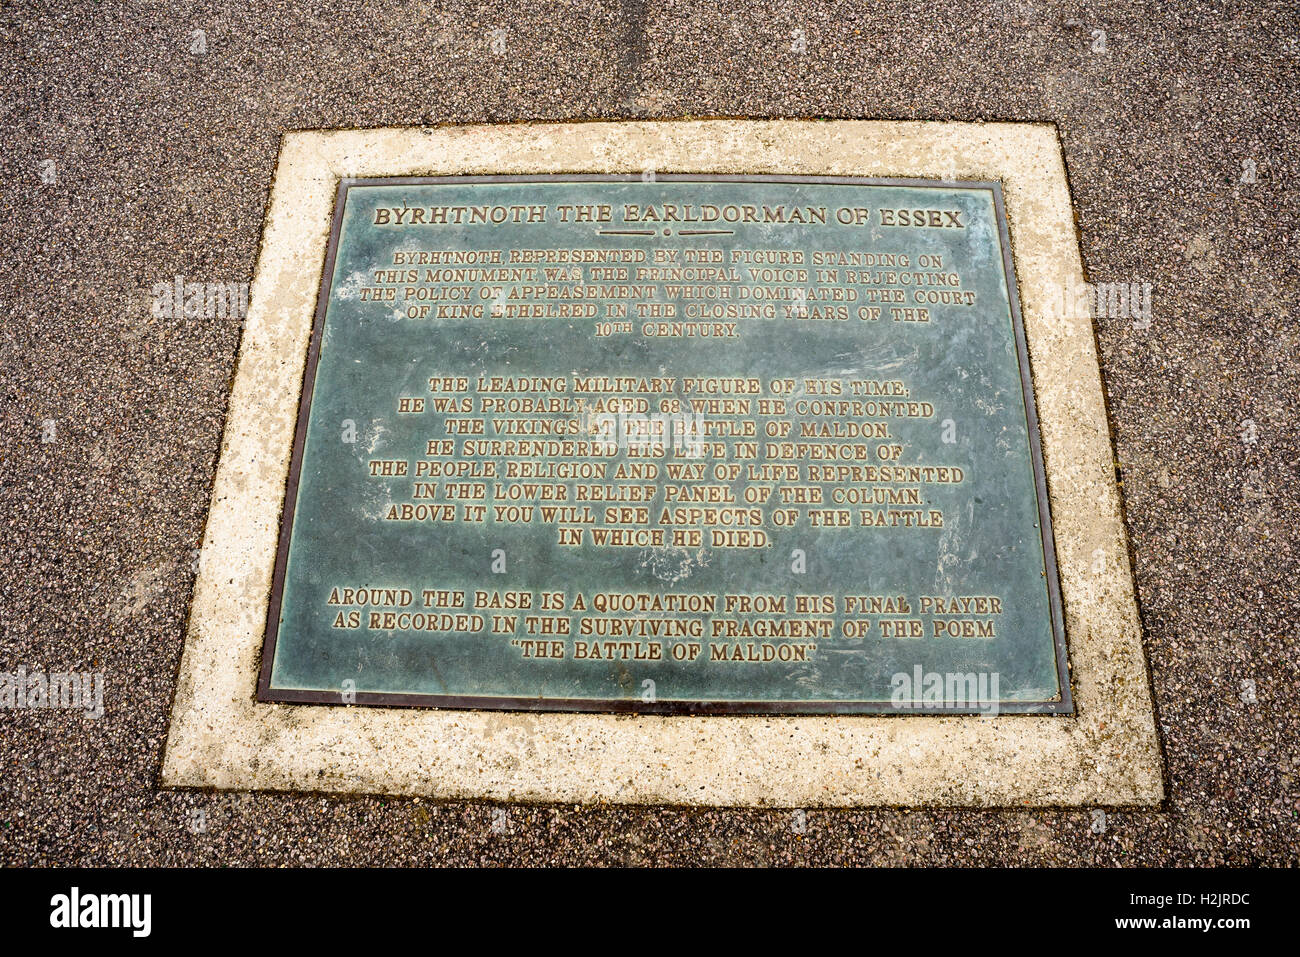 Byrhtnoth the Earldorman of Maldon Plaque memorial seen in the popular estuary town in Essex England - Stock Image